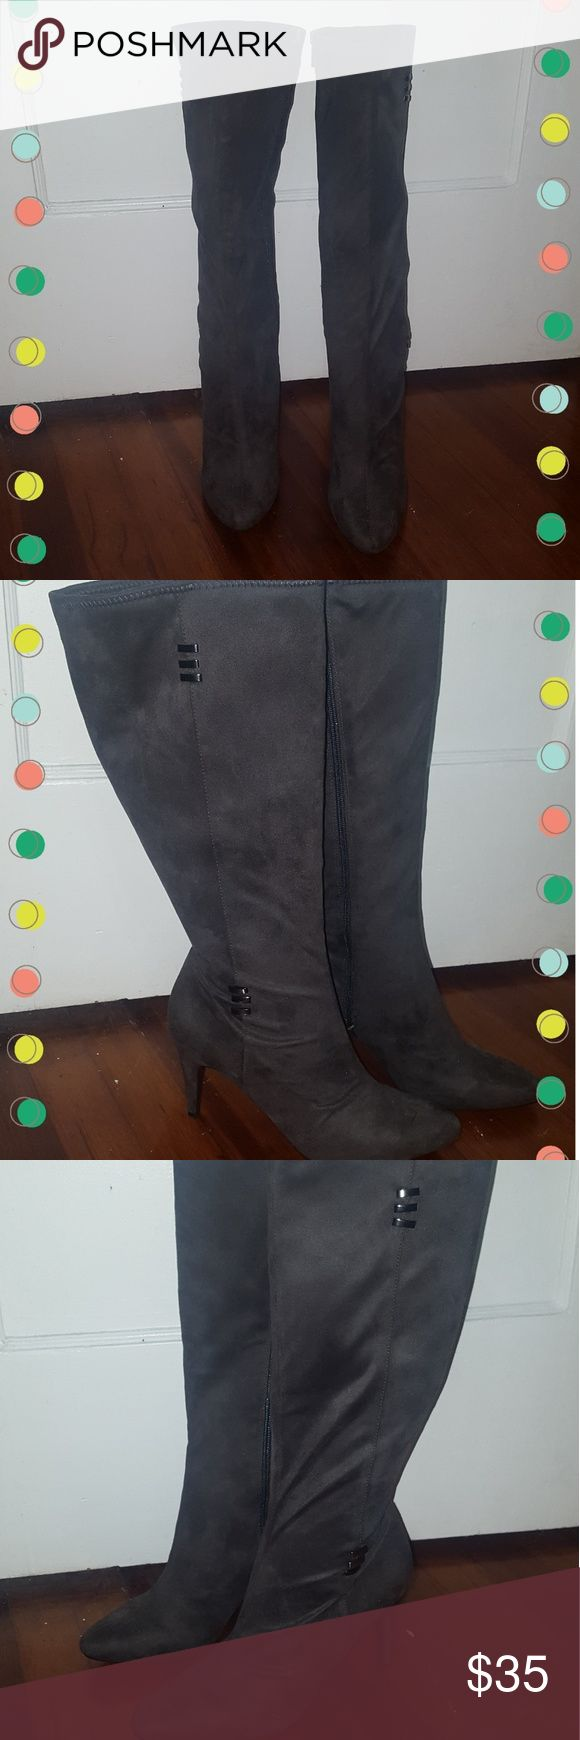 Charcoal Gray Suede Boots Size 10m Charcoal Gray Suede boots, Wide Calf!! Good condition. 18inches tall from heel to top, 4 inch heel. NEVER WORN OUTSIDE. They fit great alone or with jeans! I provided pics with and without flash to show their color. Contact me with any questions! 🌟🌟🌟 Shoes Heeled Boots